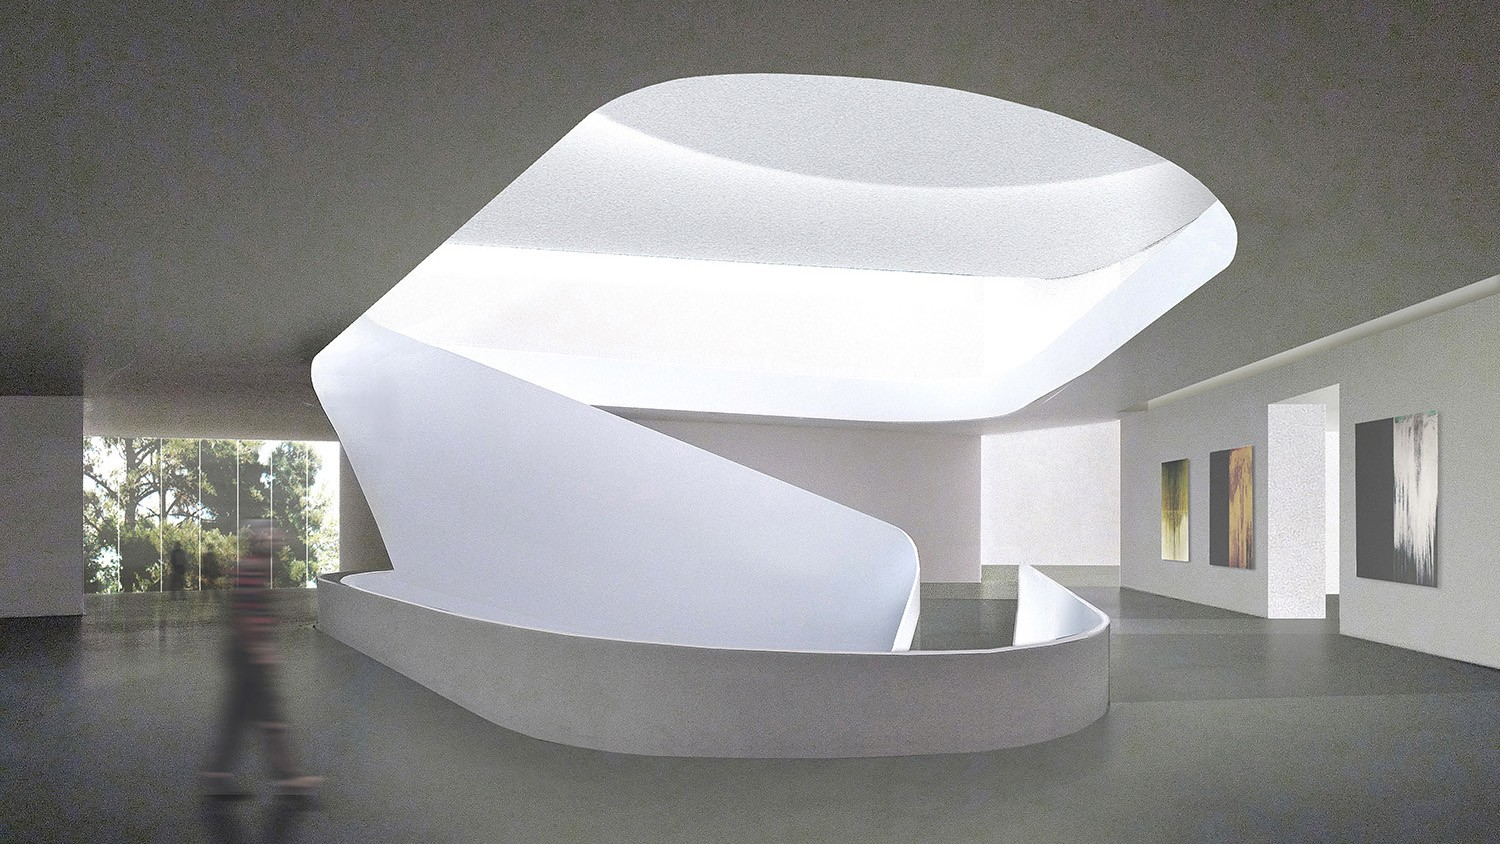 https://s3.us-east-2.amazonaws.com/steven-holl/uploads/projects/project-images/StevenHollArchitects_MFAH_SHA_12_forum-gallery-2nd-floor_WH.jpg